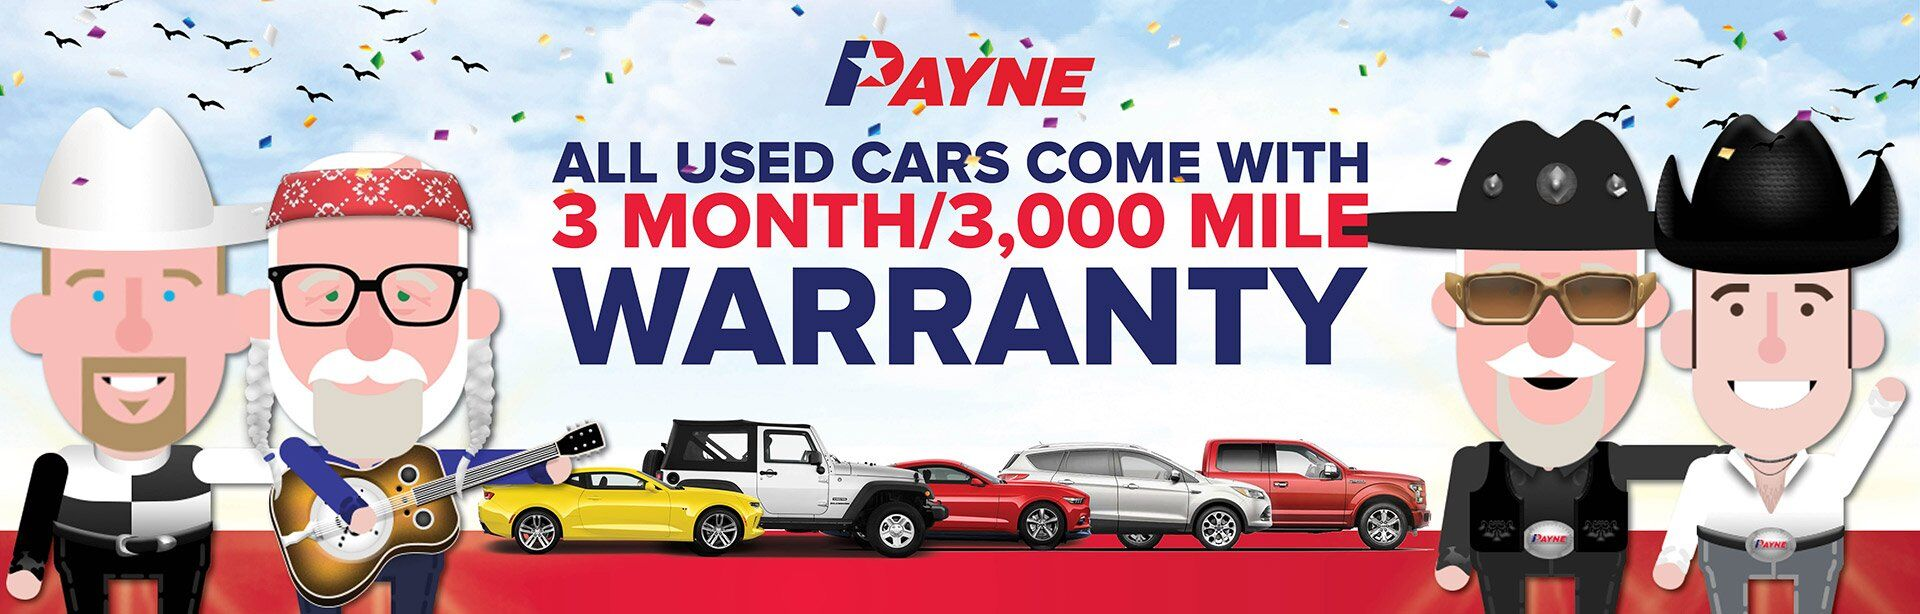 Car Dealership In Weslaco Tx Ed Payne Motors